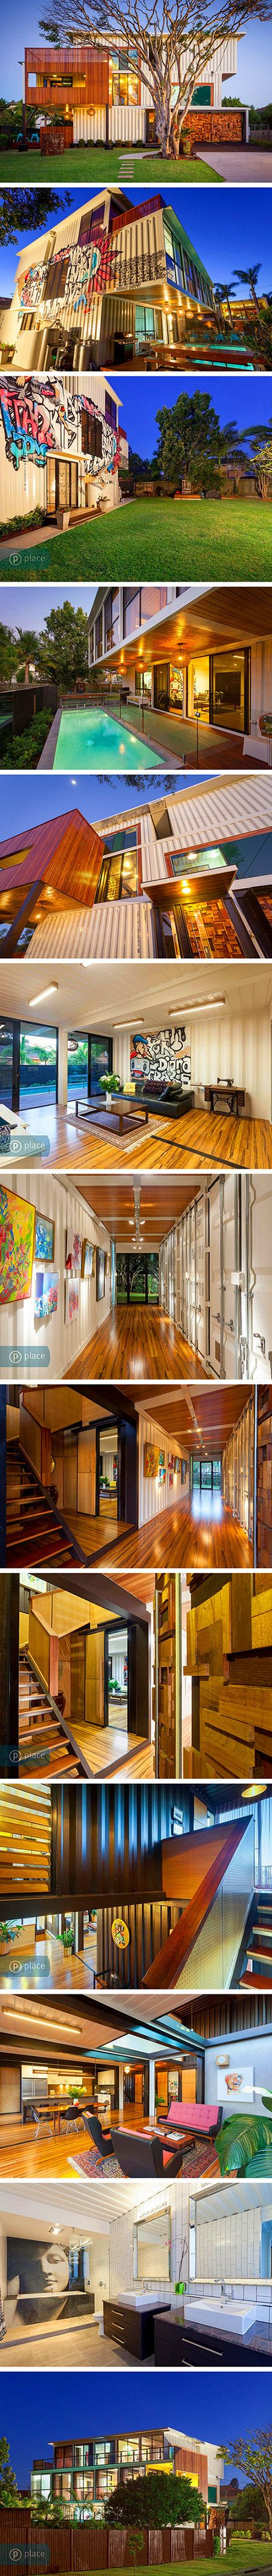 You might not realize it, but this house in Graceville, Australia was built from 31 shipping containers. The large freights are typically used to send goods overseas, but in this case they form a unique and modern living space. Todd Miller of the architecture firm ZeilgerBuild designed the three story, 6,000 square-foot home whose backyard includes an outdoor saltwater pool. Both the interior and exterior are a nod to the industrial nature of the building's materials.